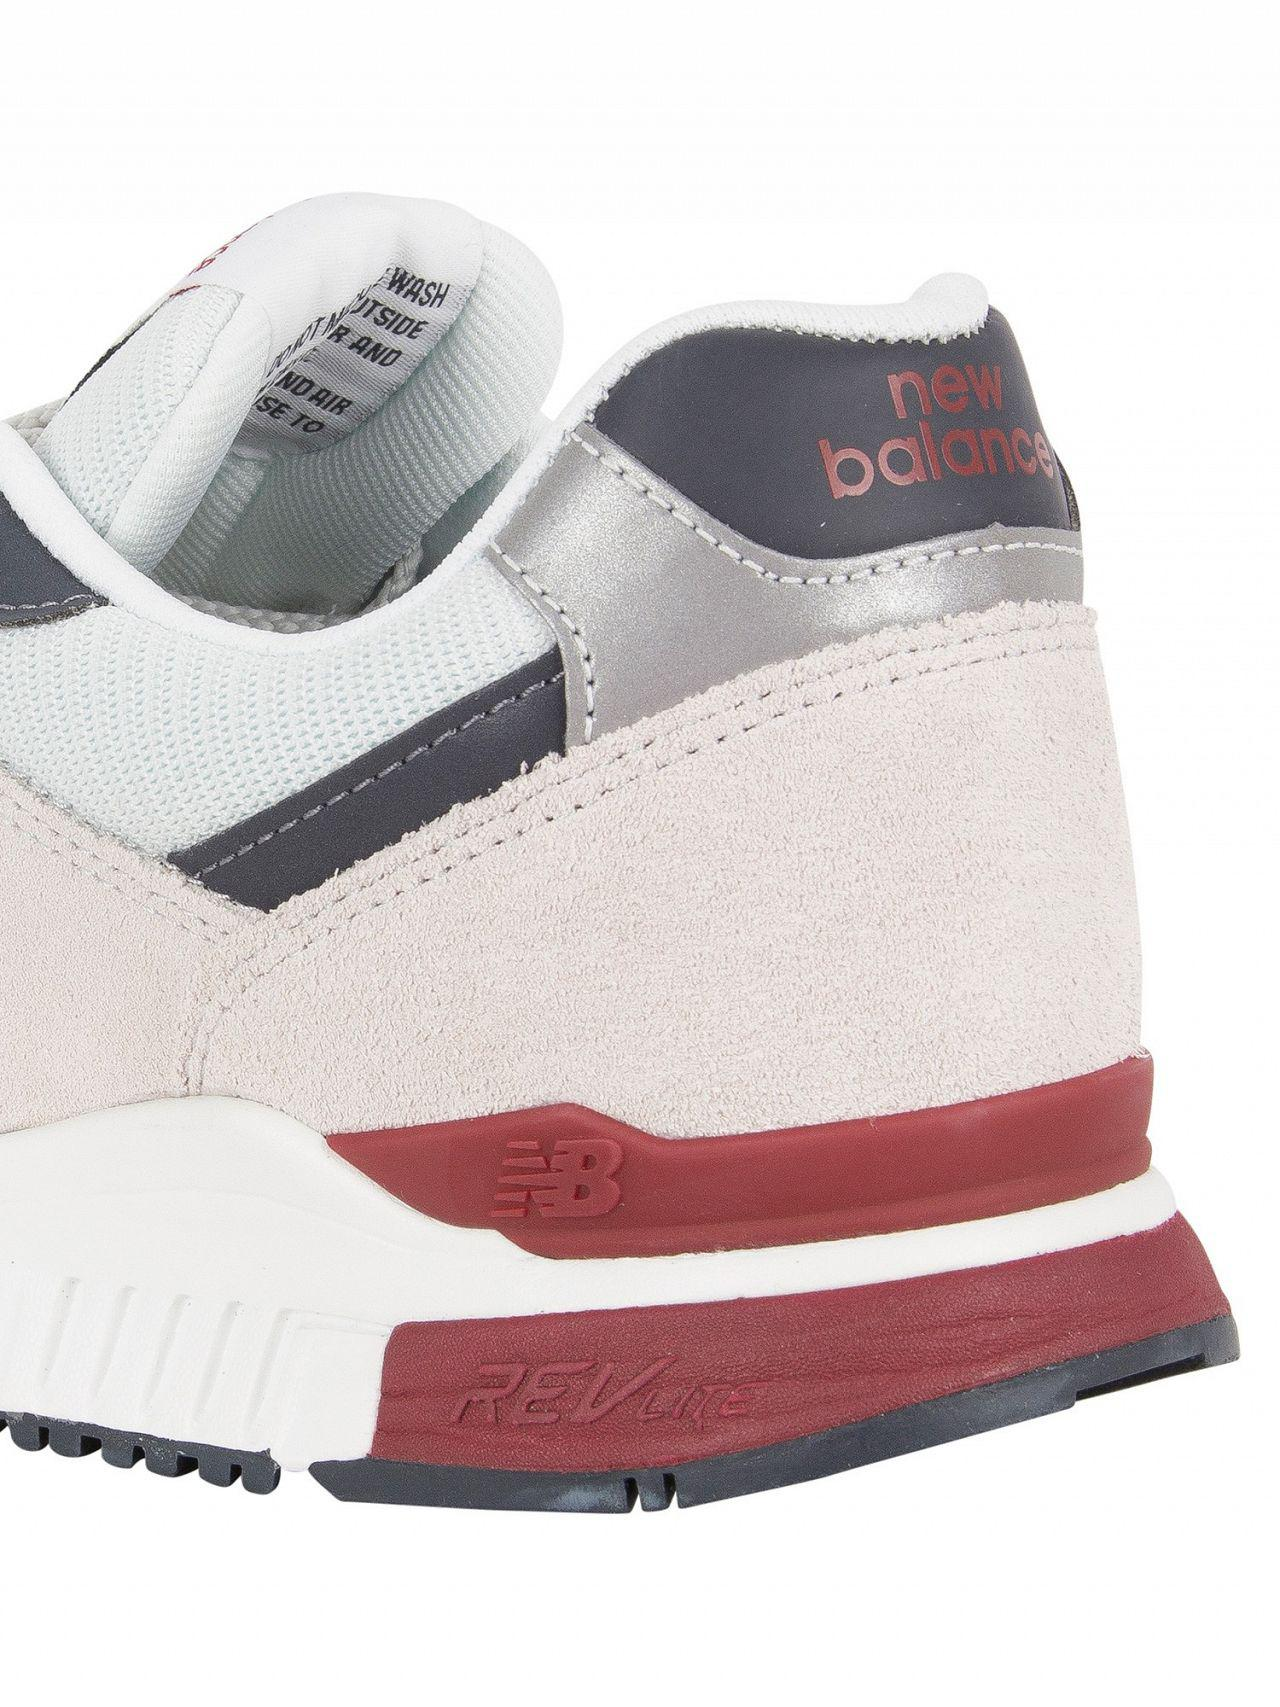 fb45ac0651 New Balance Pigment/white 840 Suede Trainers in White for Men - Lyst